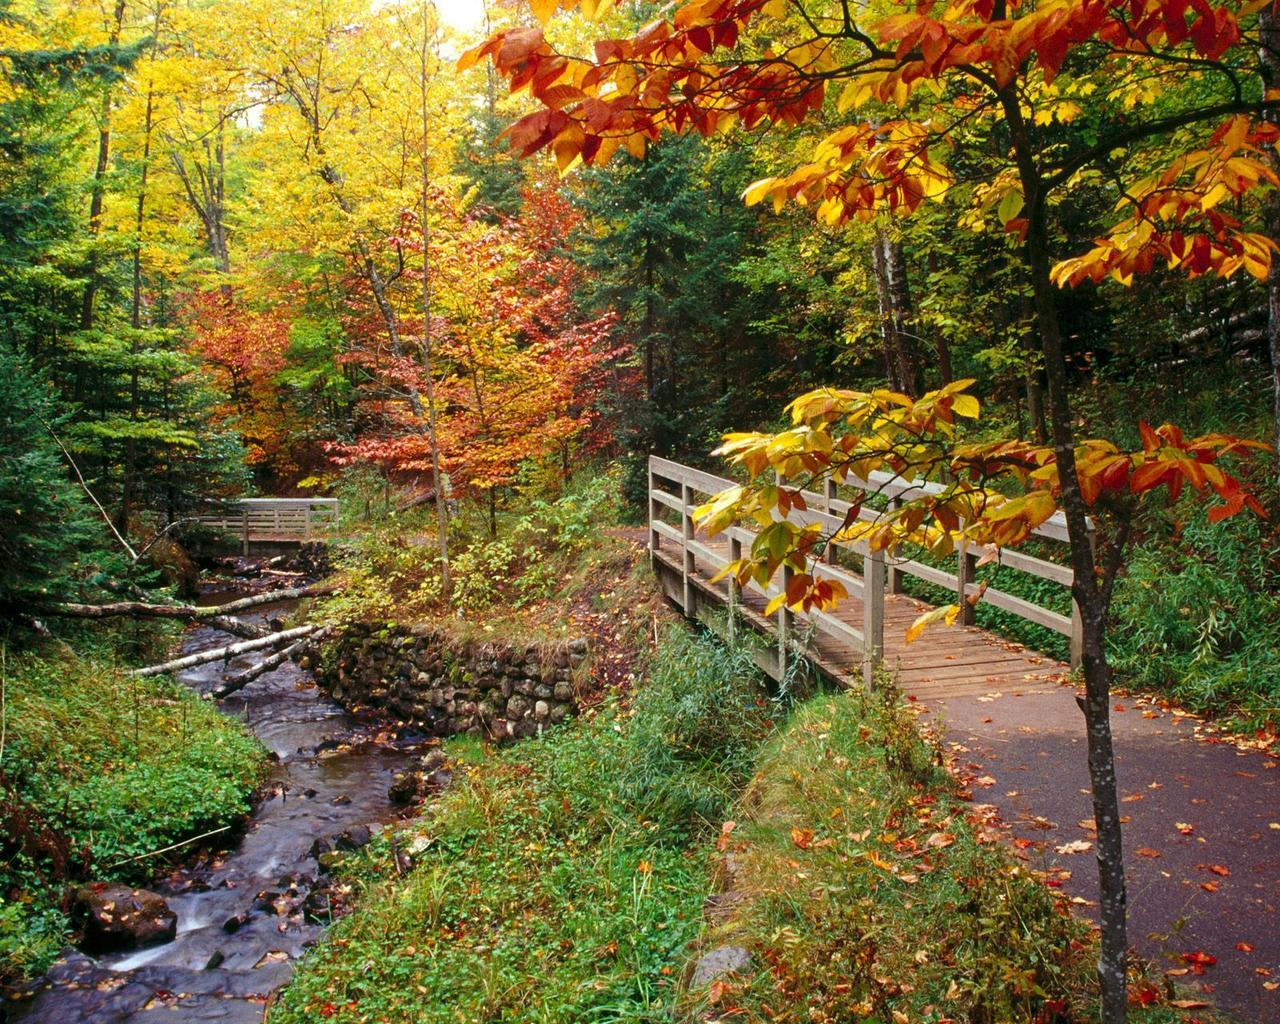 munising falls trail autumn HD Wallpaper